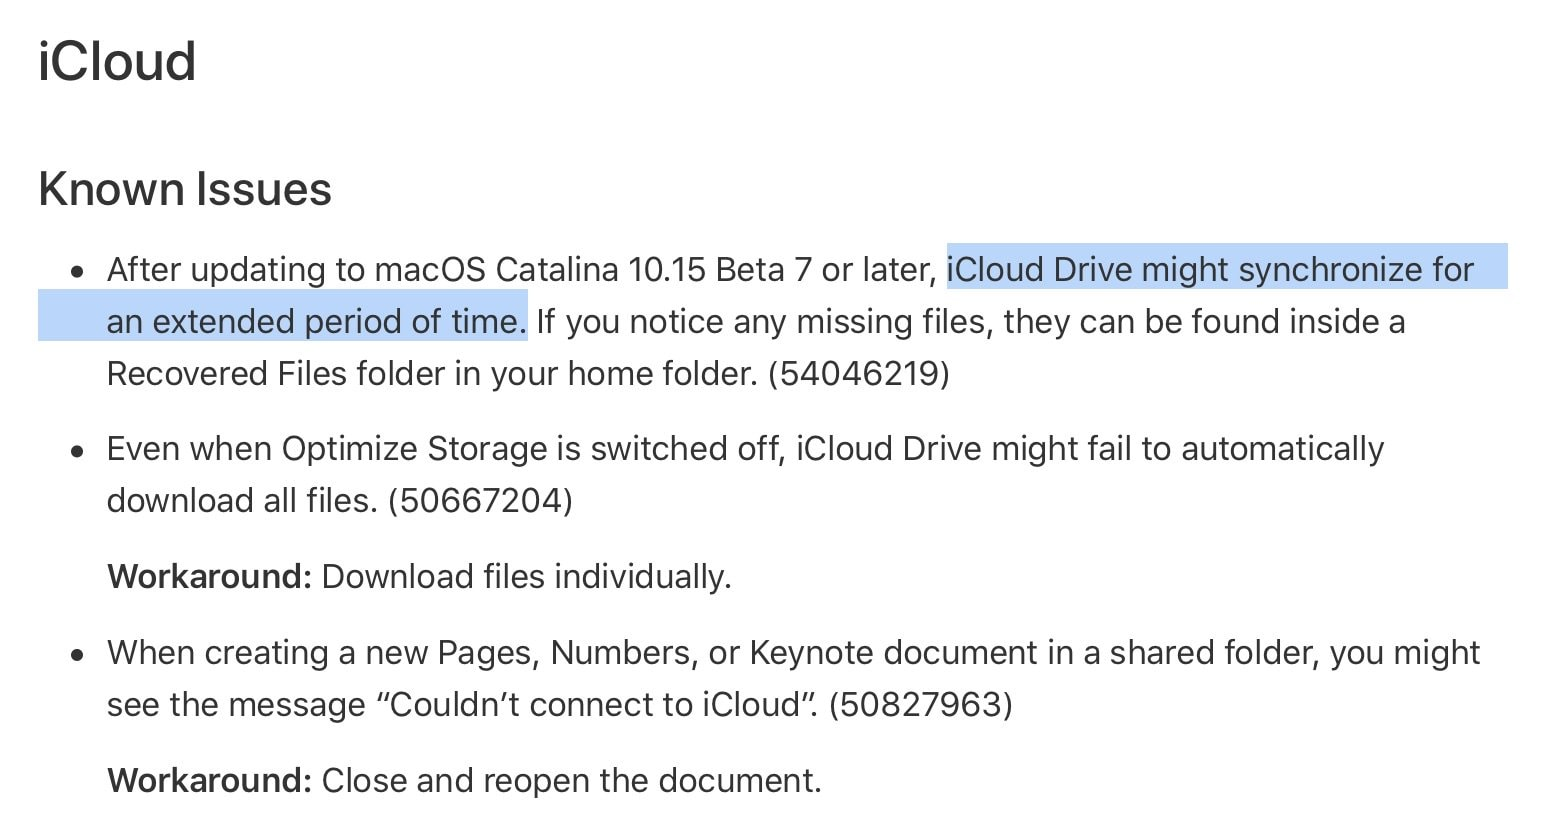 Apple's release notes show how shaky the new iCloud implementation was.